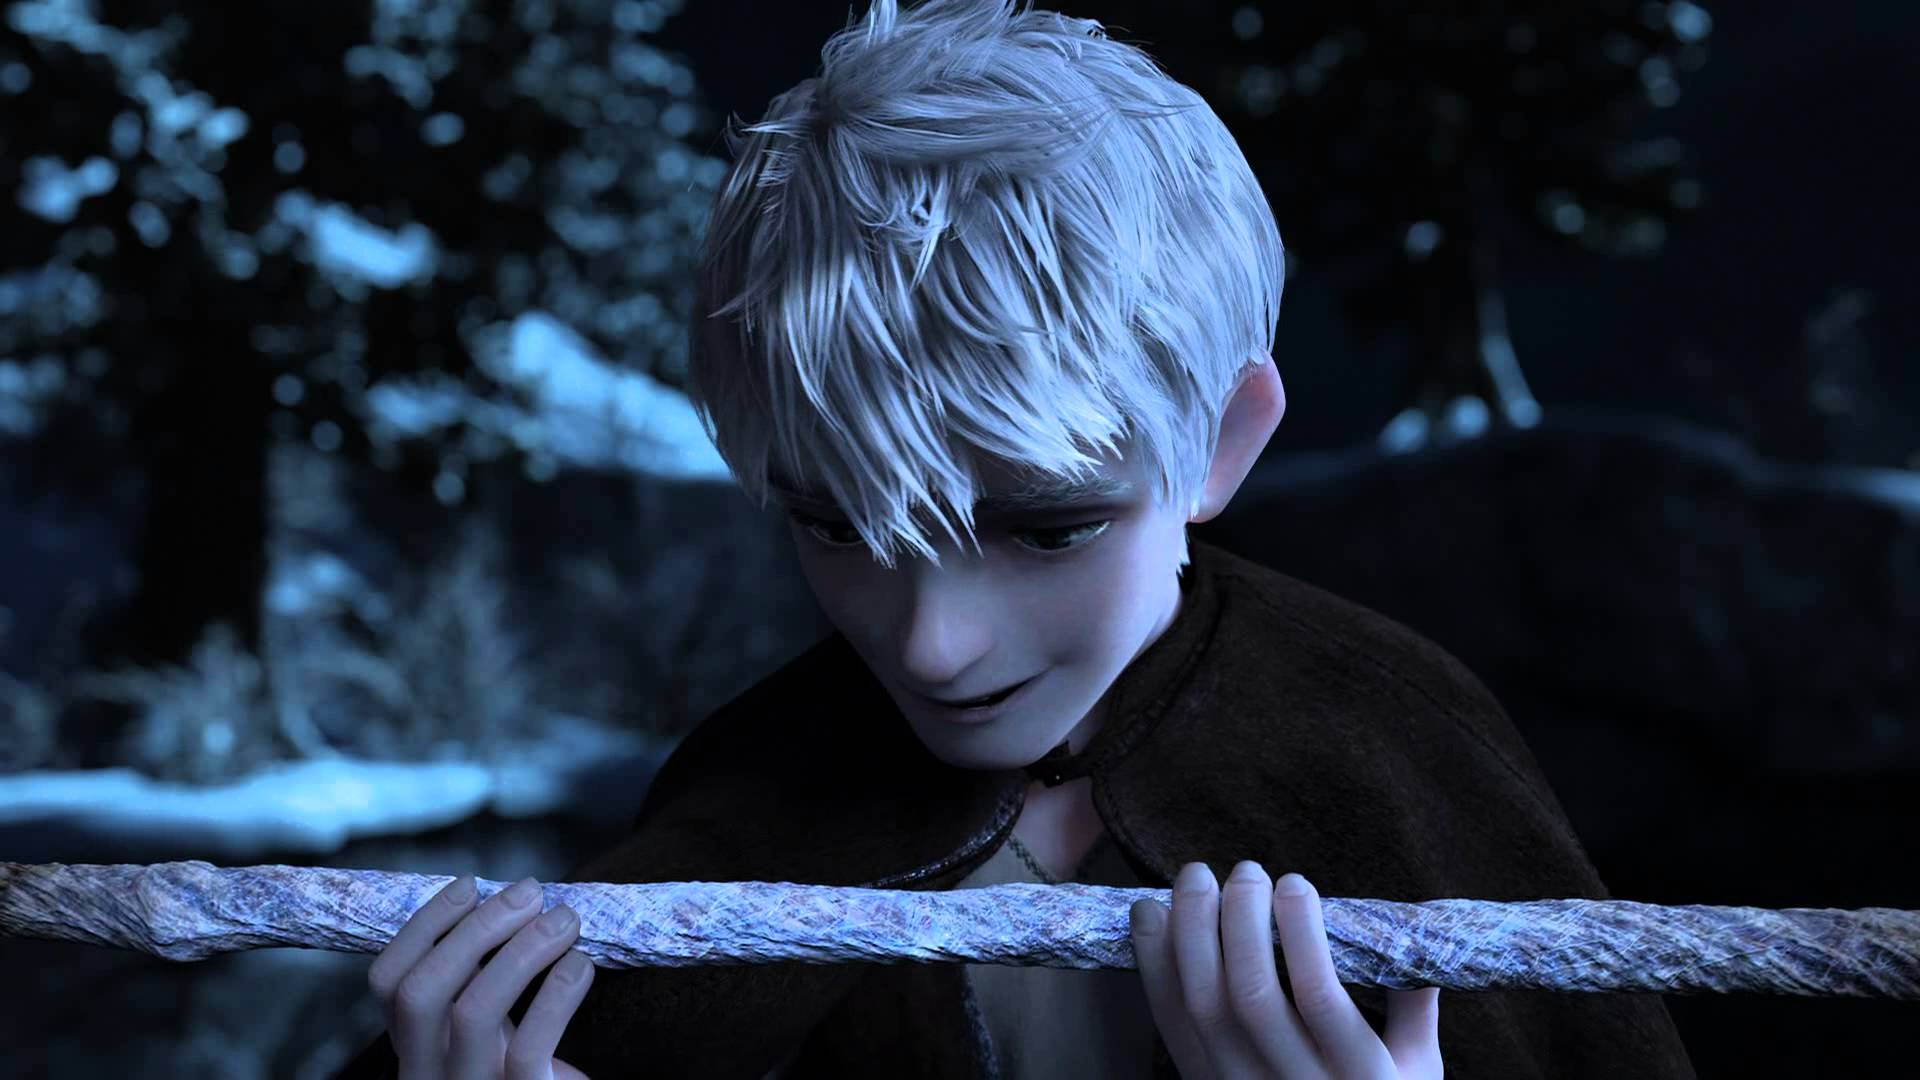 Jack frost wallpapers wallpaper cave rise of the guardians clip jack frost 2012 hd youtube altavistaventures Choice Image